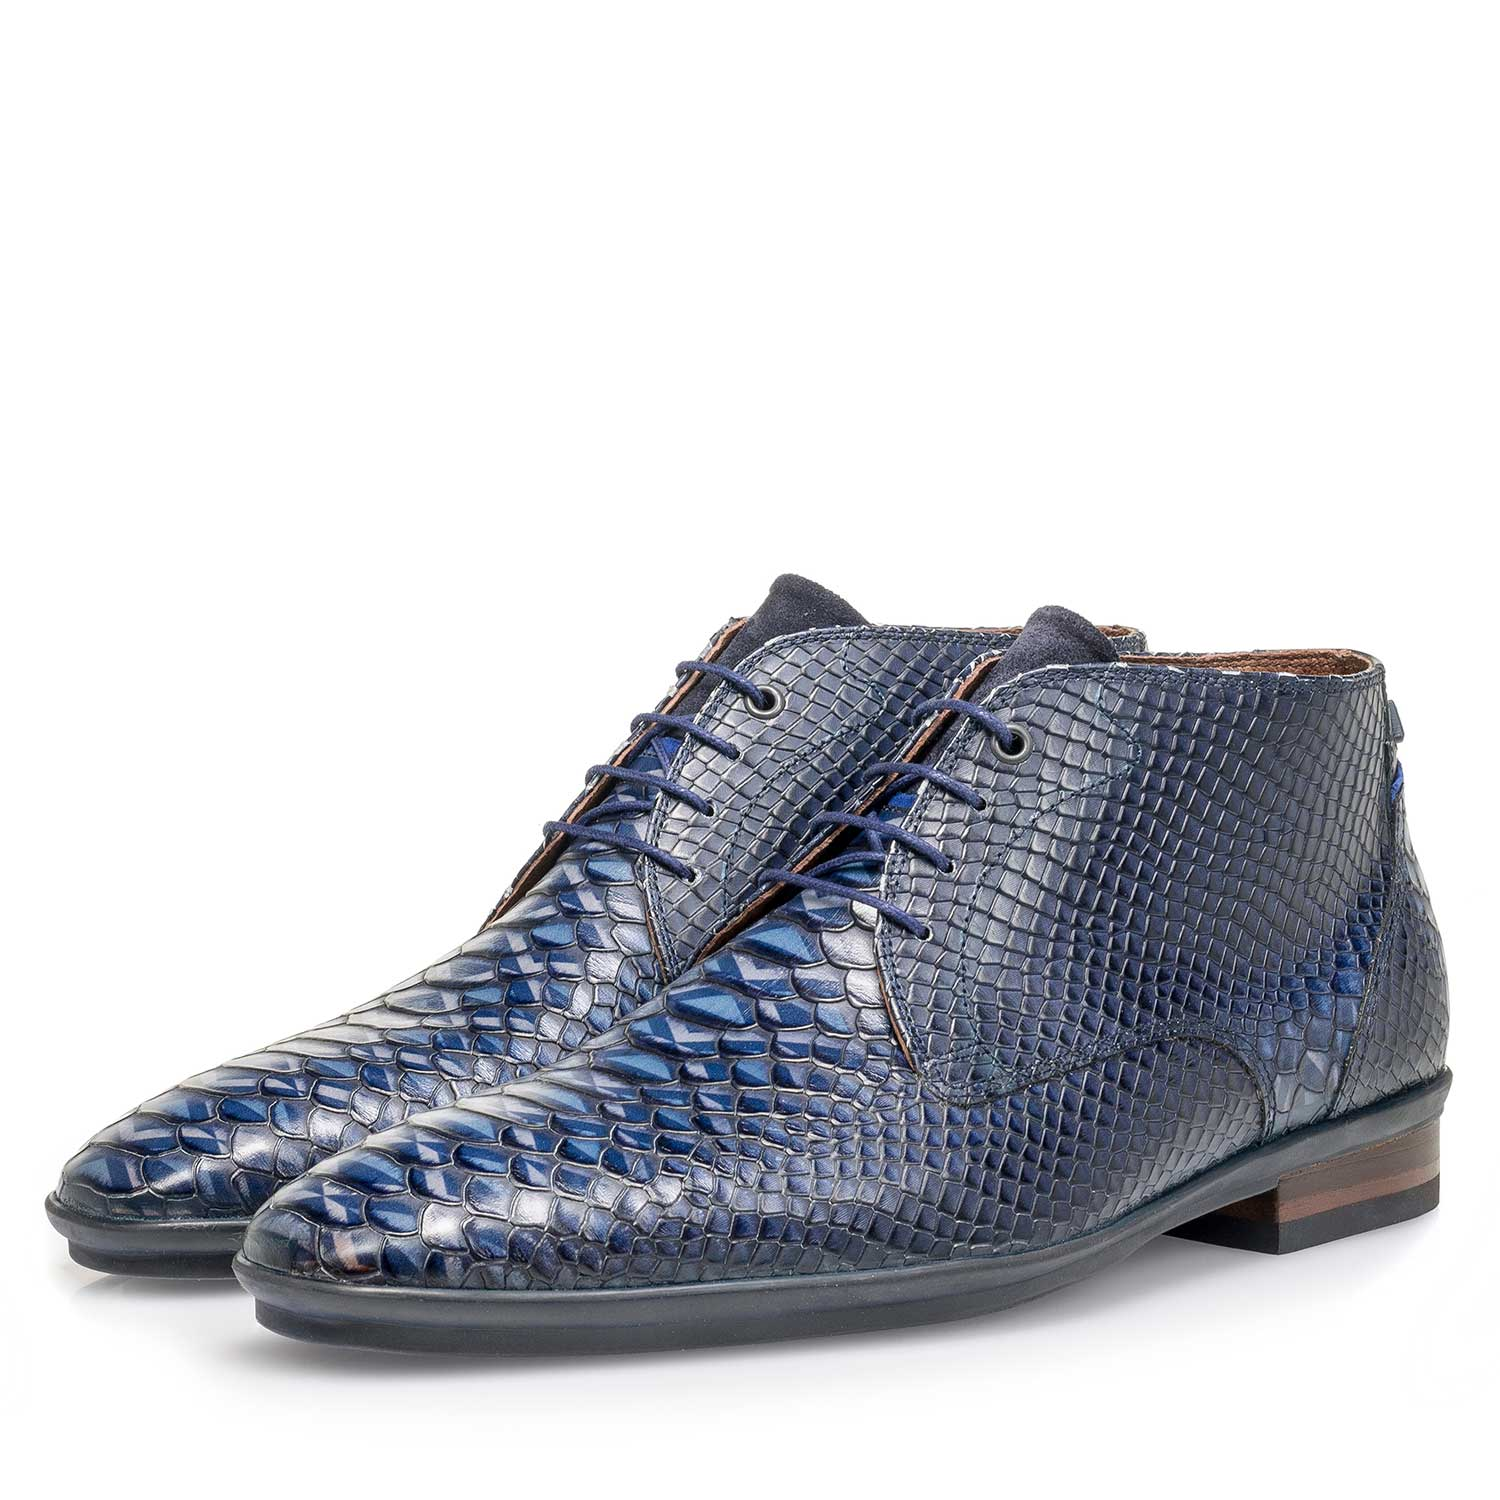 10475/02 - Blue calf leather lace shoe with snake print